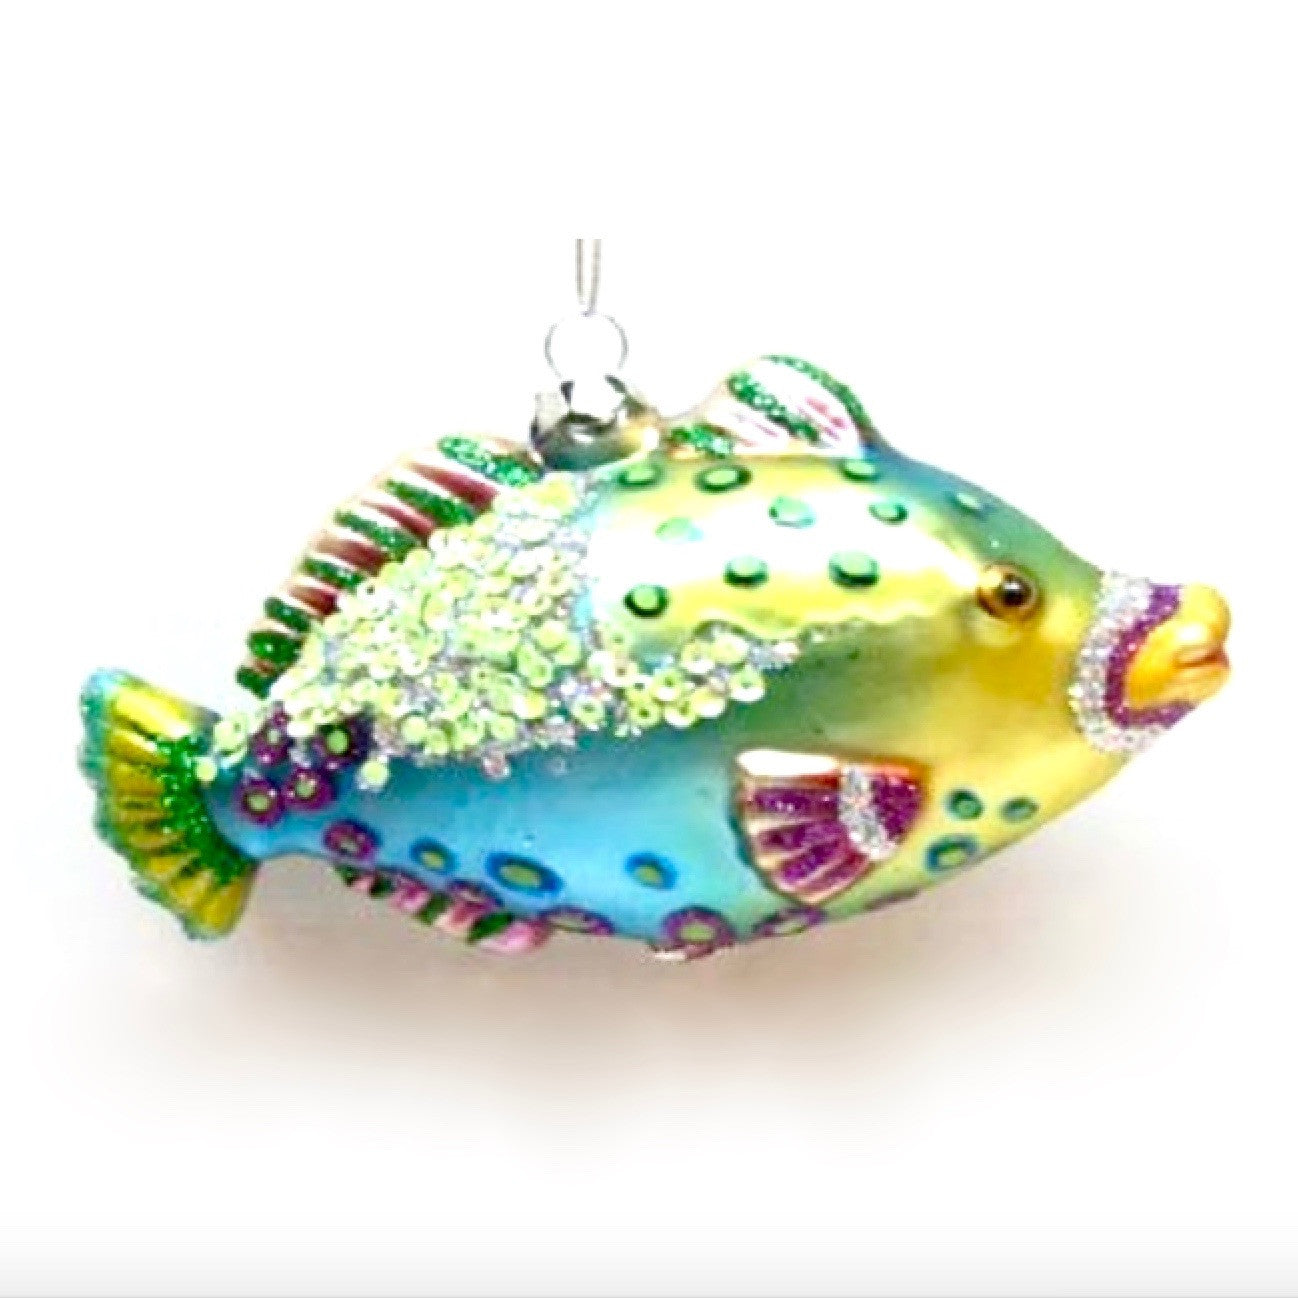 Jim Marvin Tropical Fish Ornament - Turquoise and Green, WCI-Winward Canada, Putti Fine Furnishings